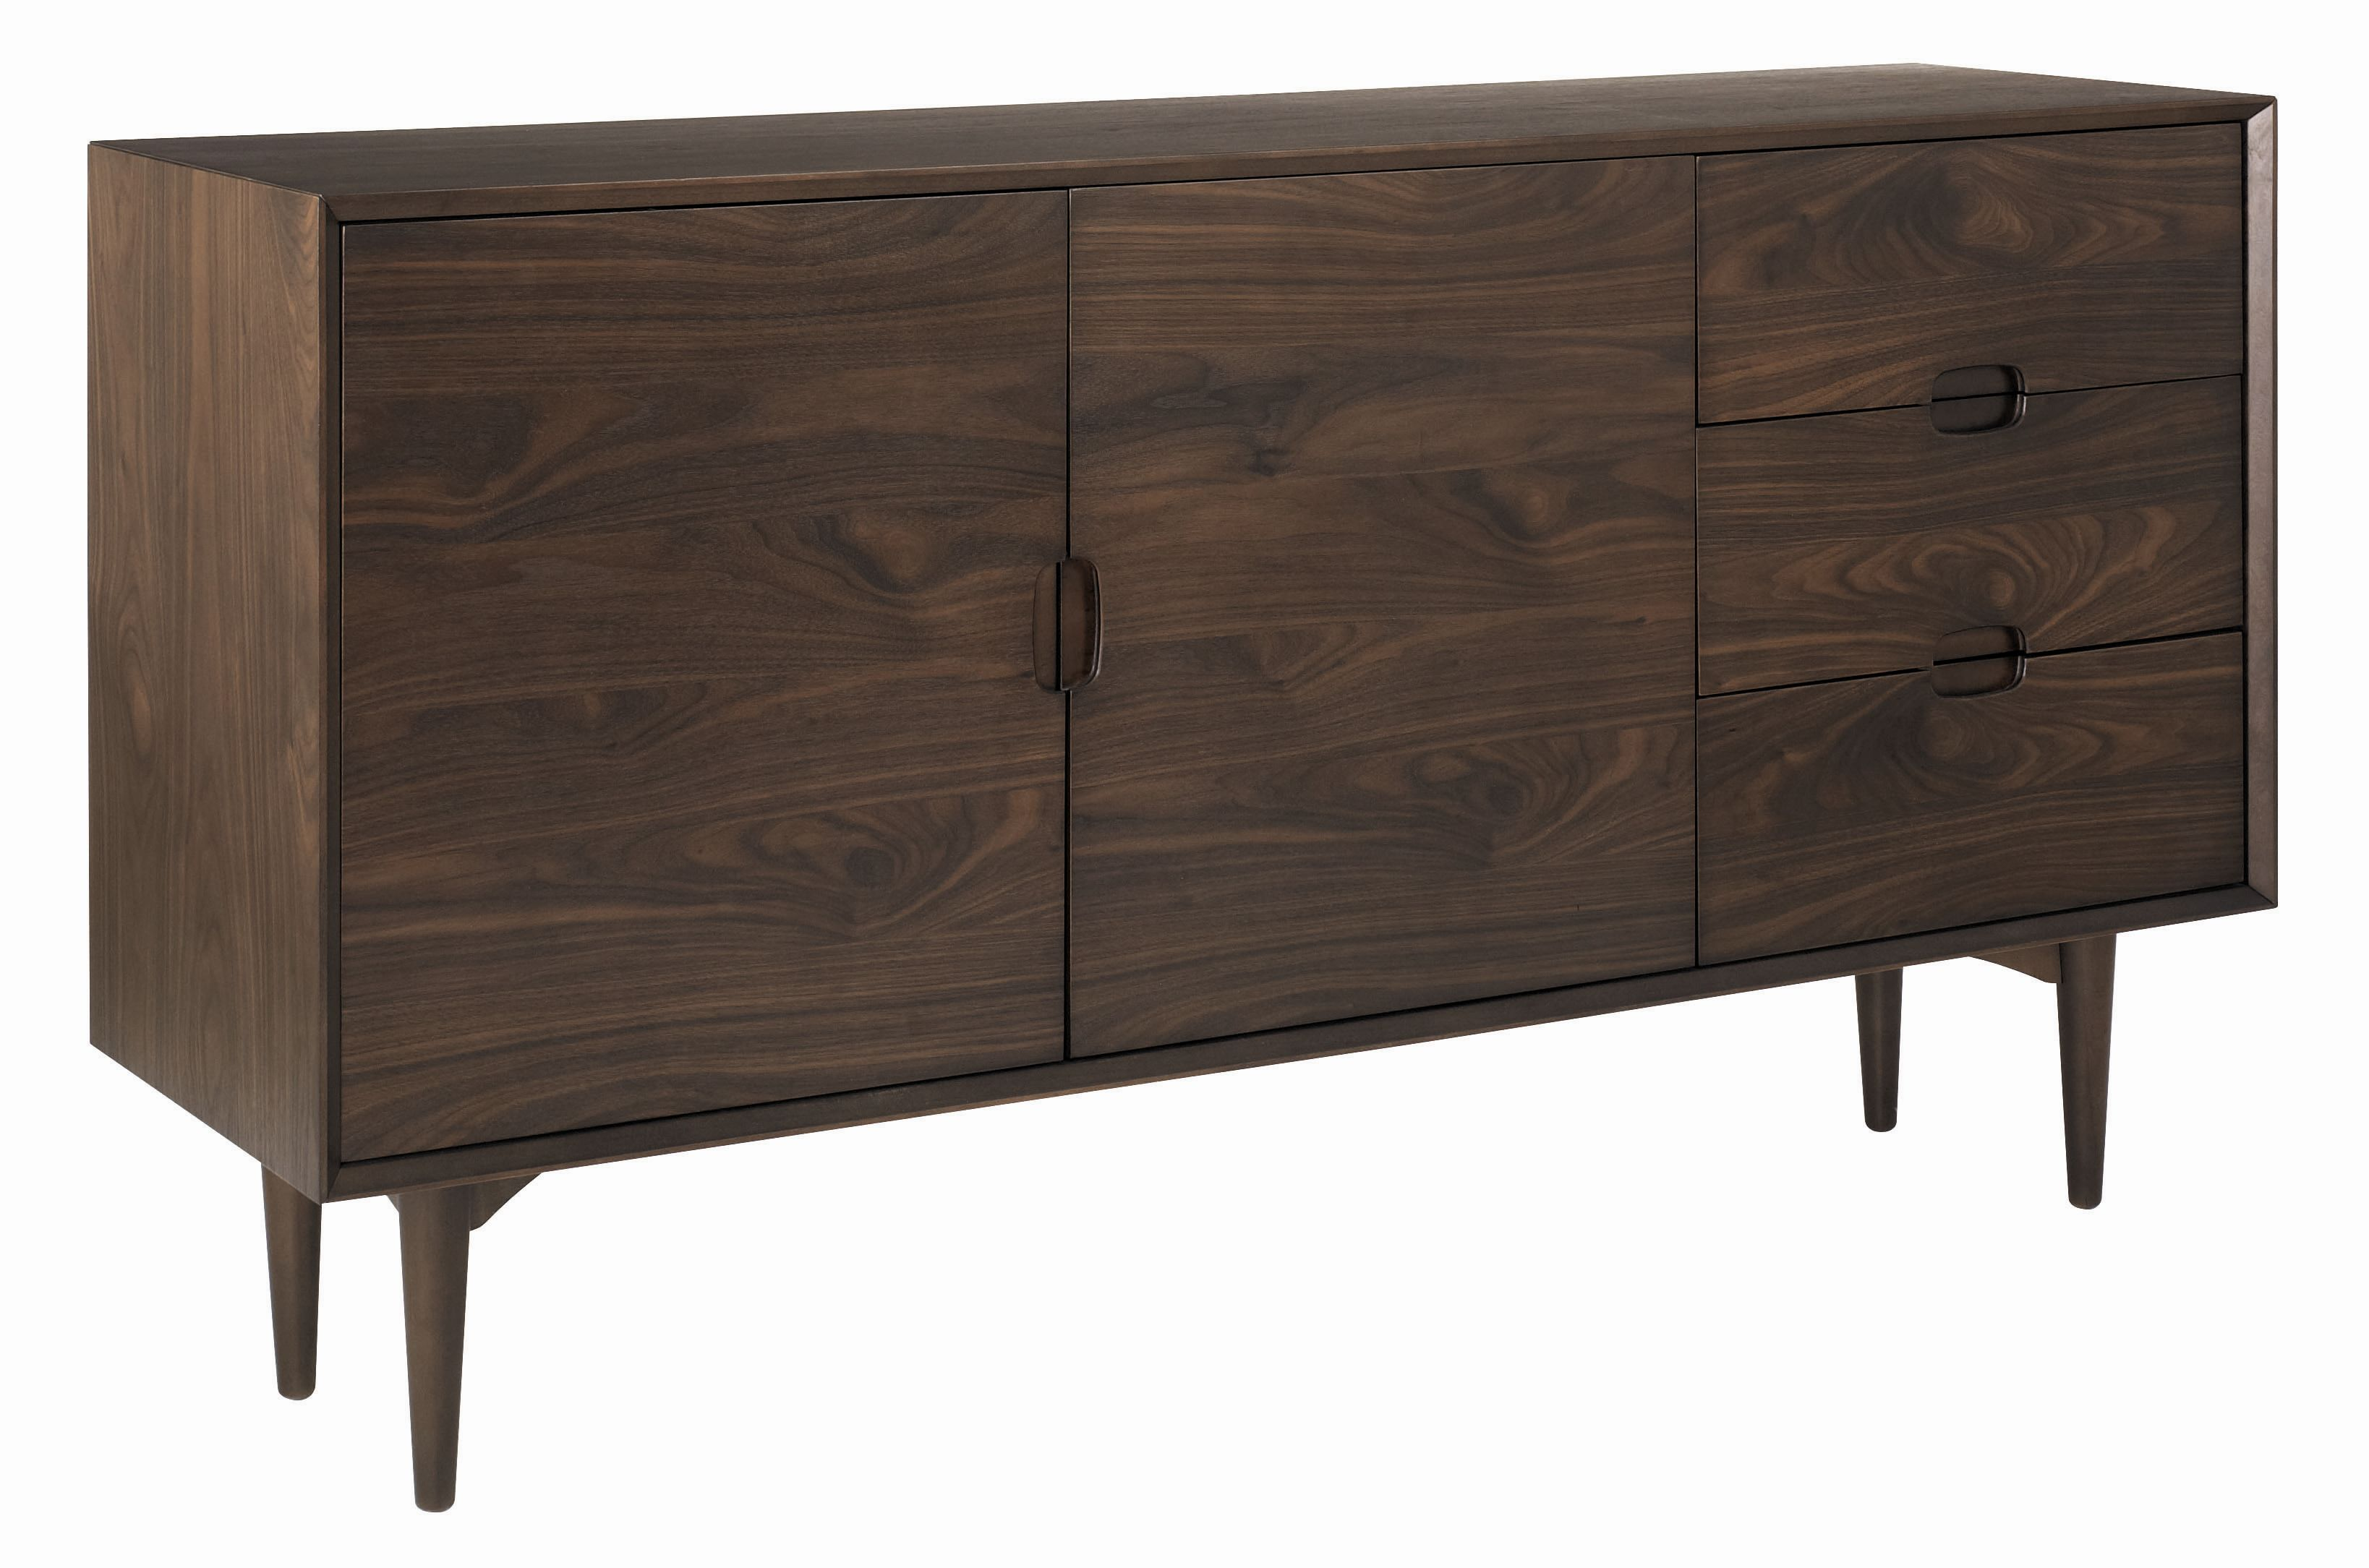 Dean walnut sideboard